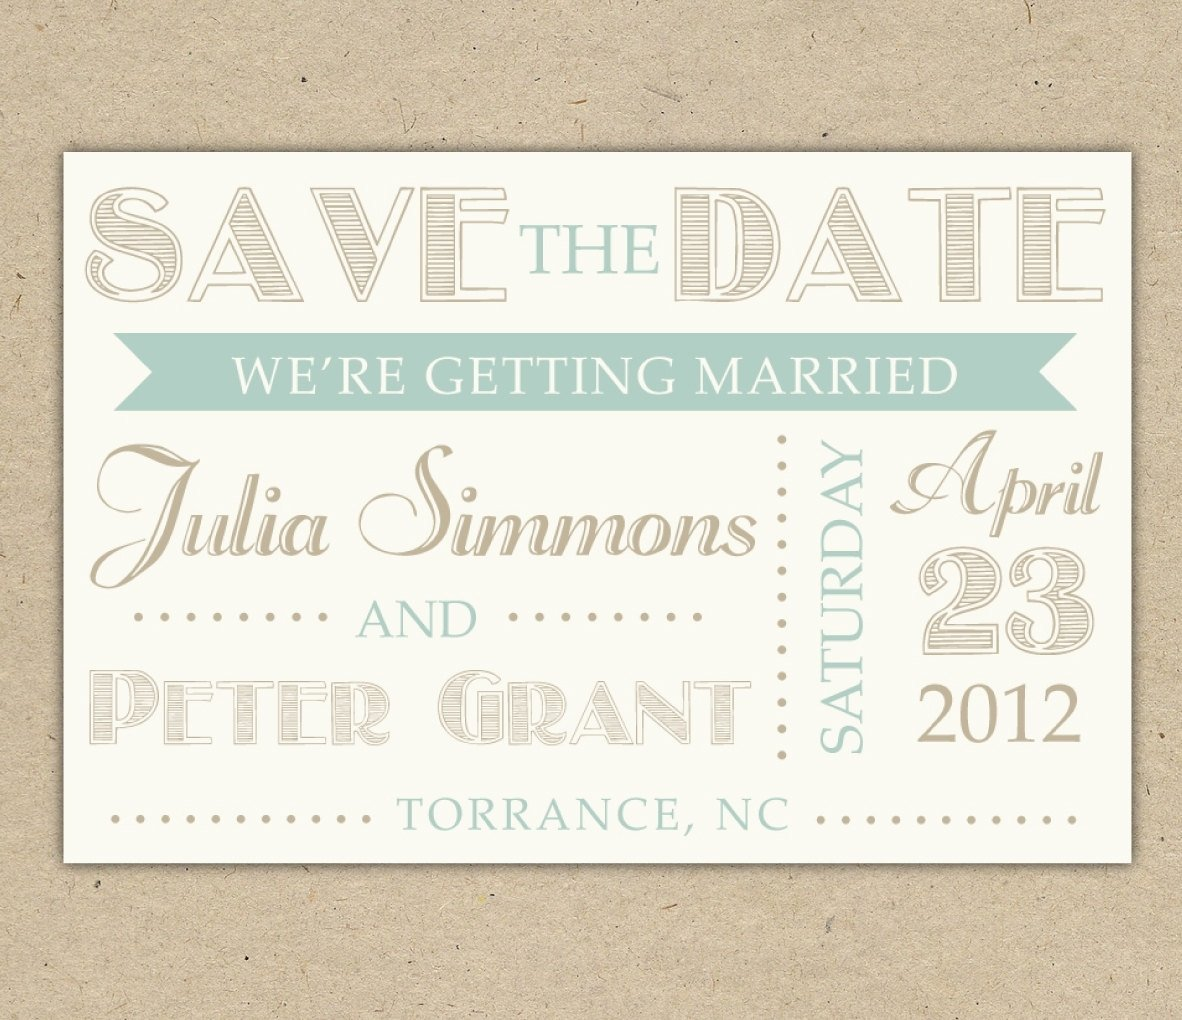 10 Fashionable Save The Date Invitations Ideas stylish wedding save the dates save the date wording with wedding 1